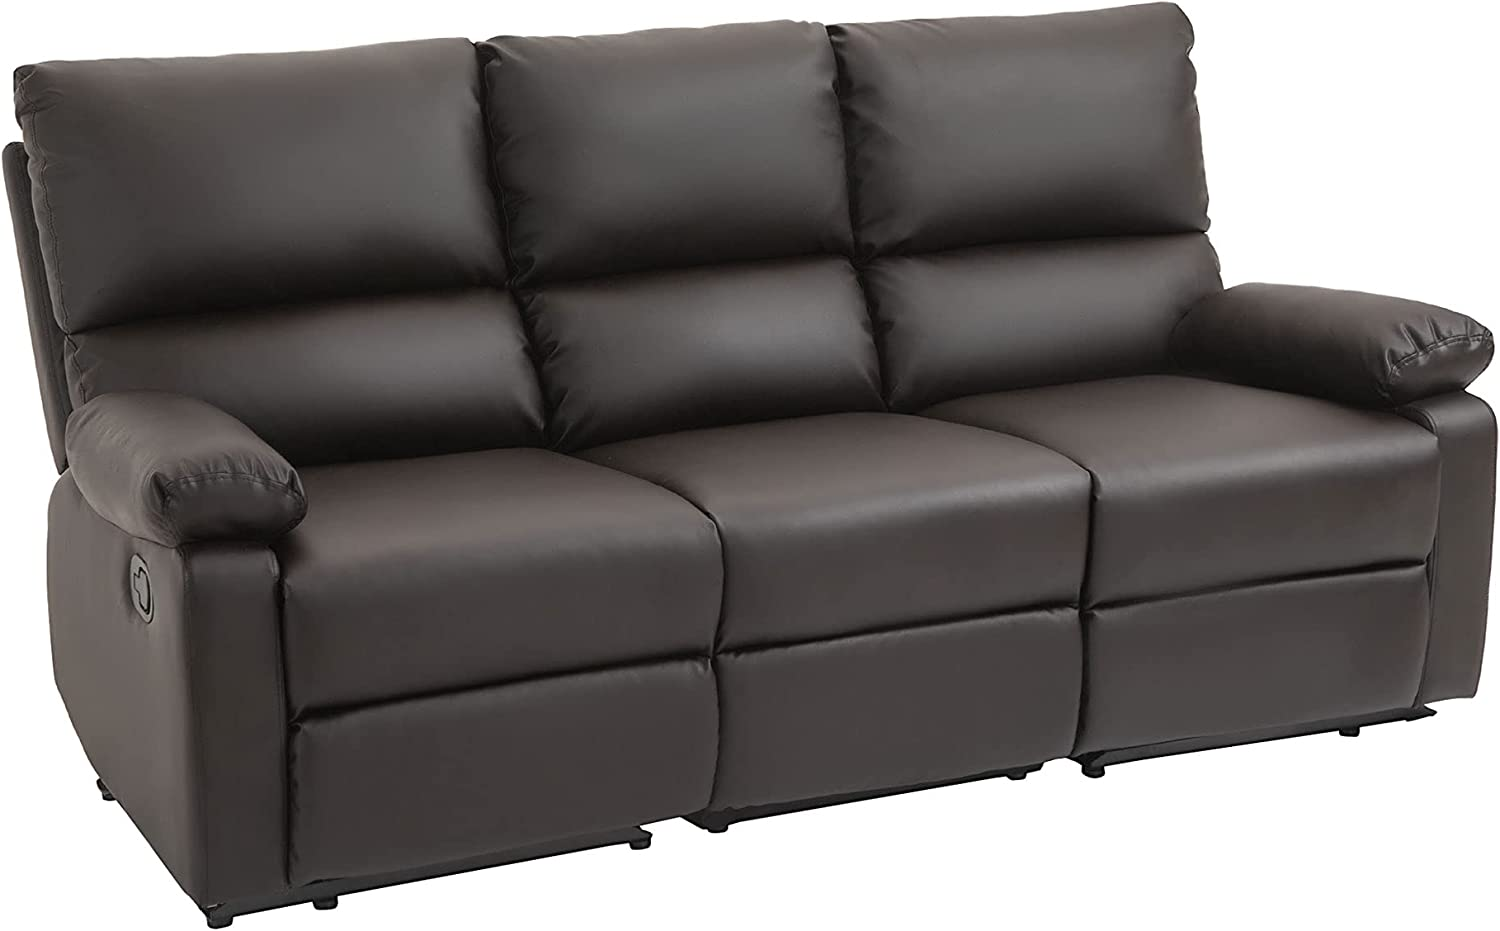 Max 72% OFF HOMCOM Dealing full price reduction Modern 3 Seater Sofa with Side 2 Manual Handle Recliners